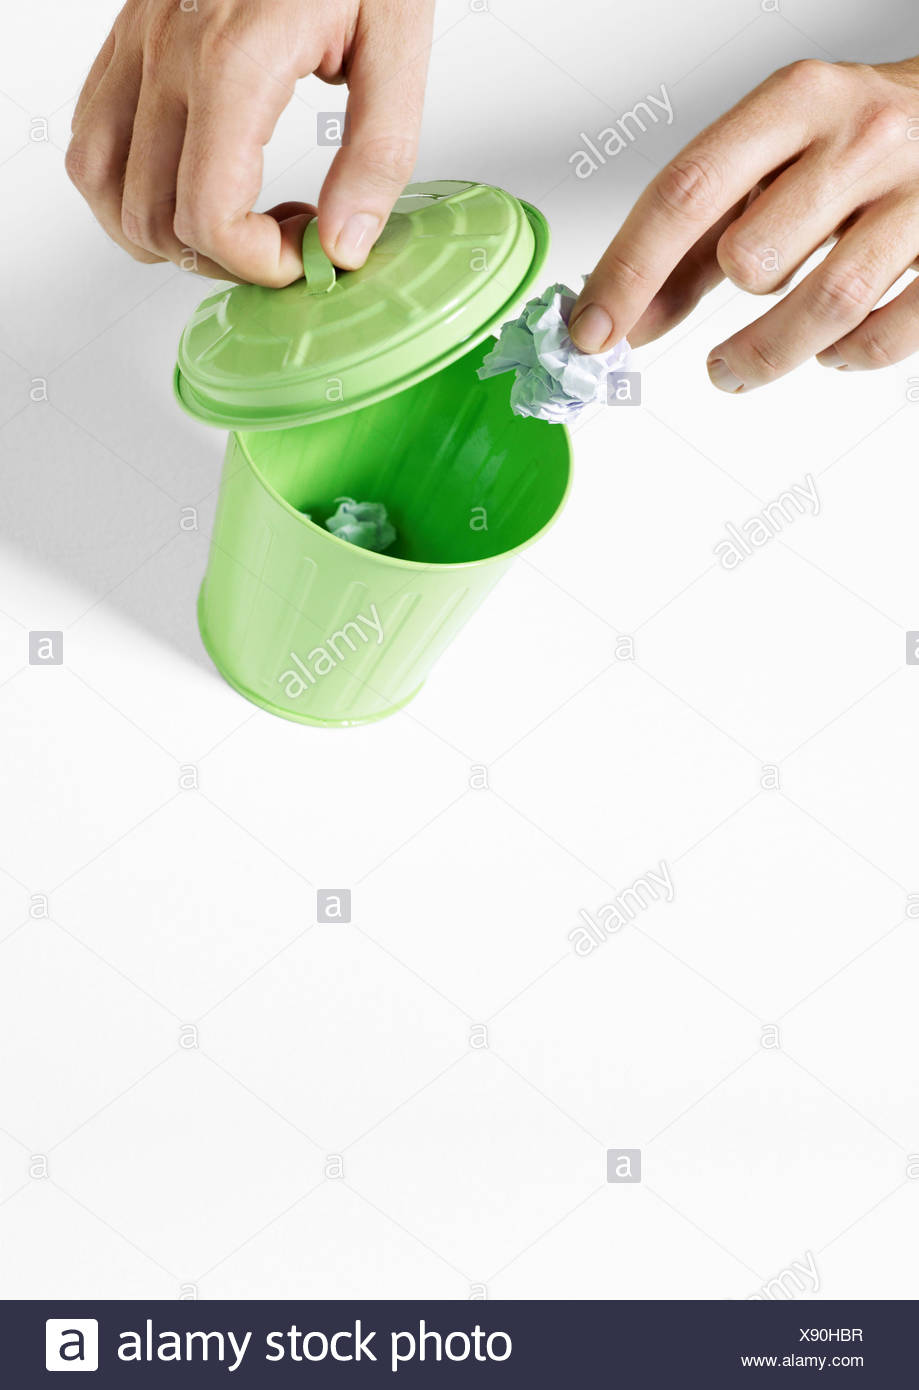 Hands putting trash in tiny trash can - Stock Image